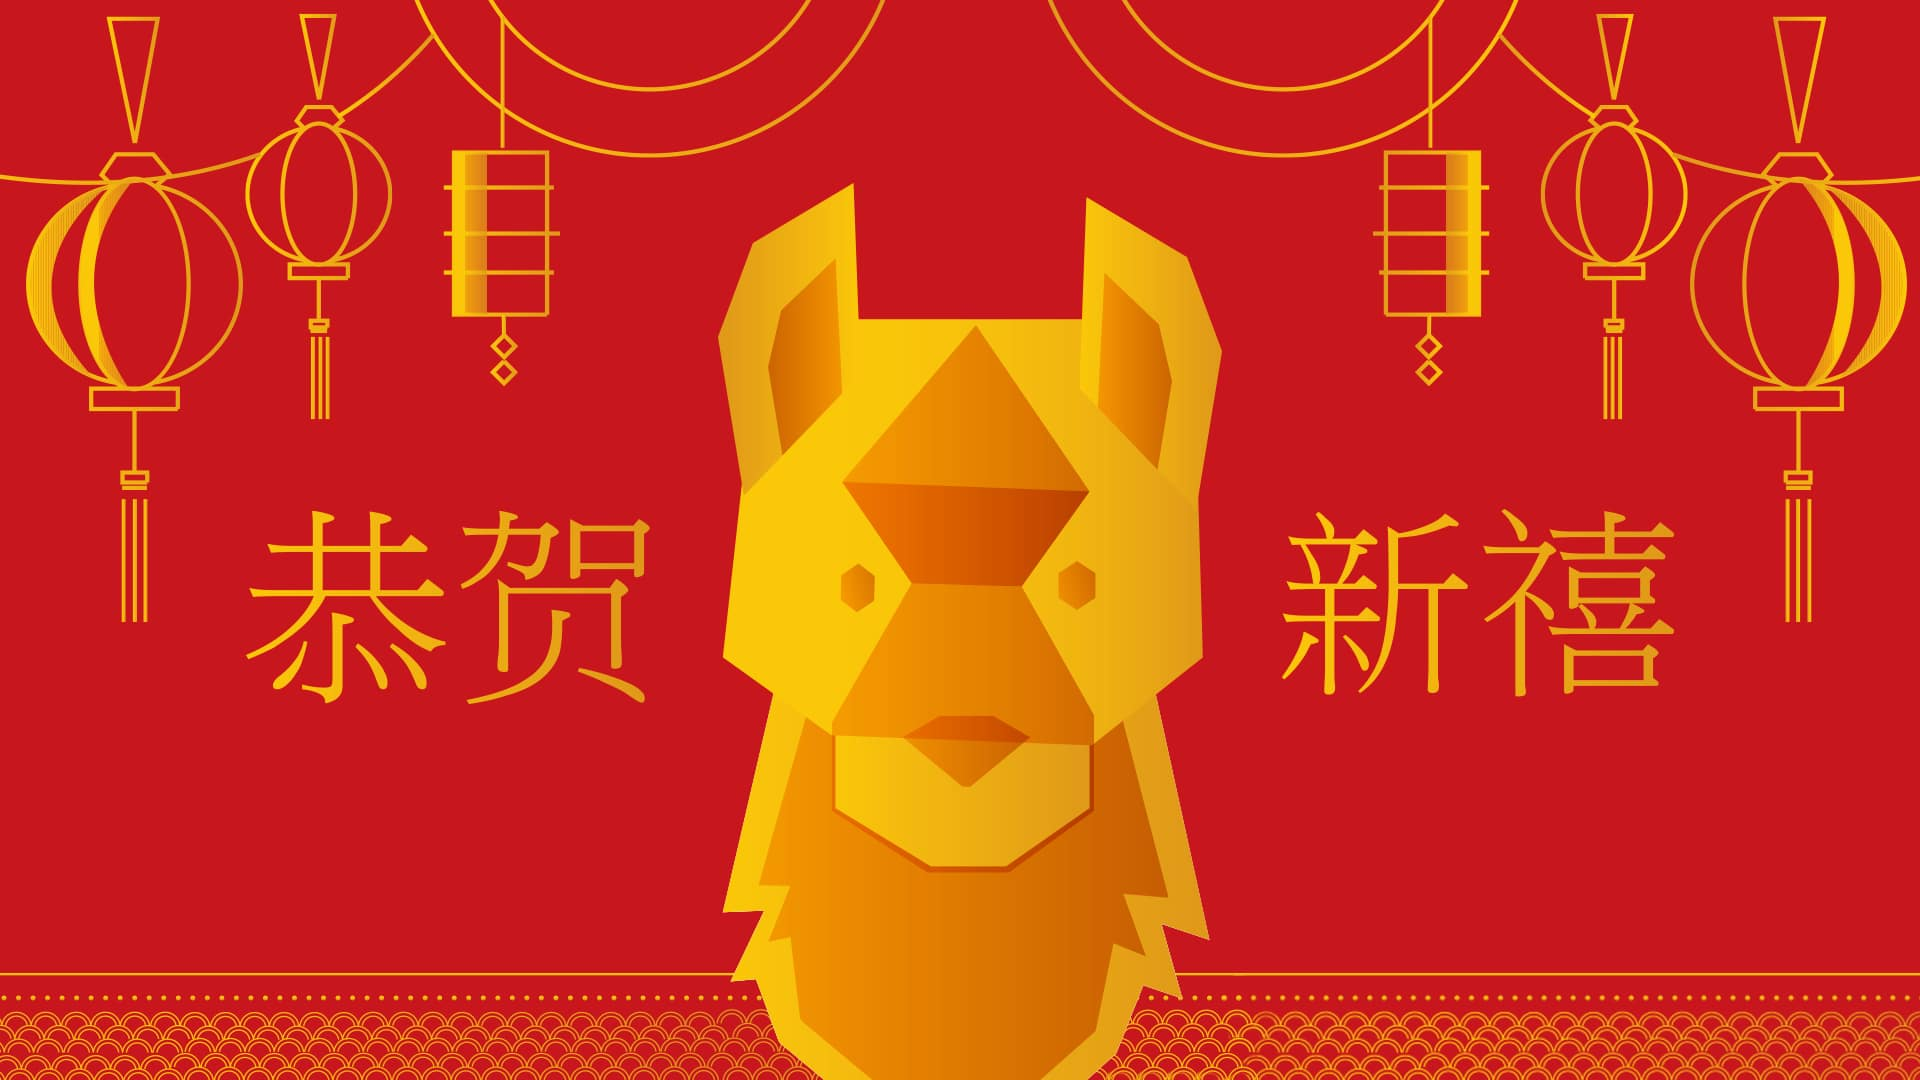 Happy chinese new year greetings cards free hd images happy chinese new year greetings cards kristyandbryce Choice Image